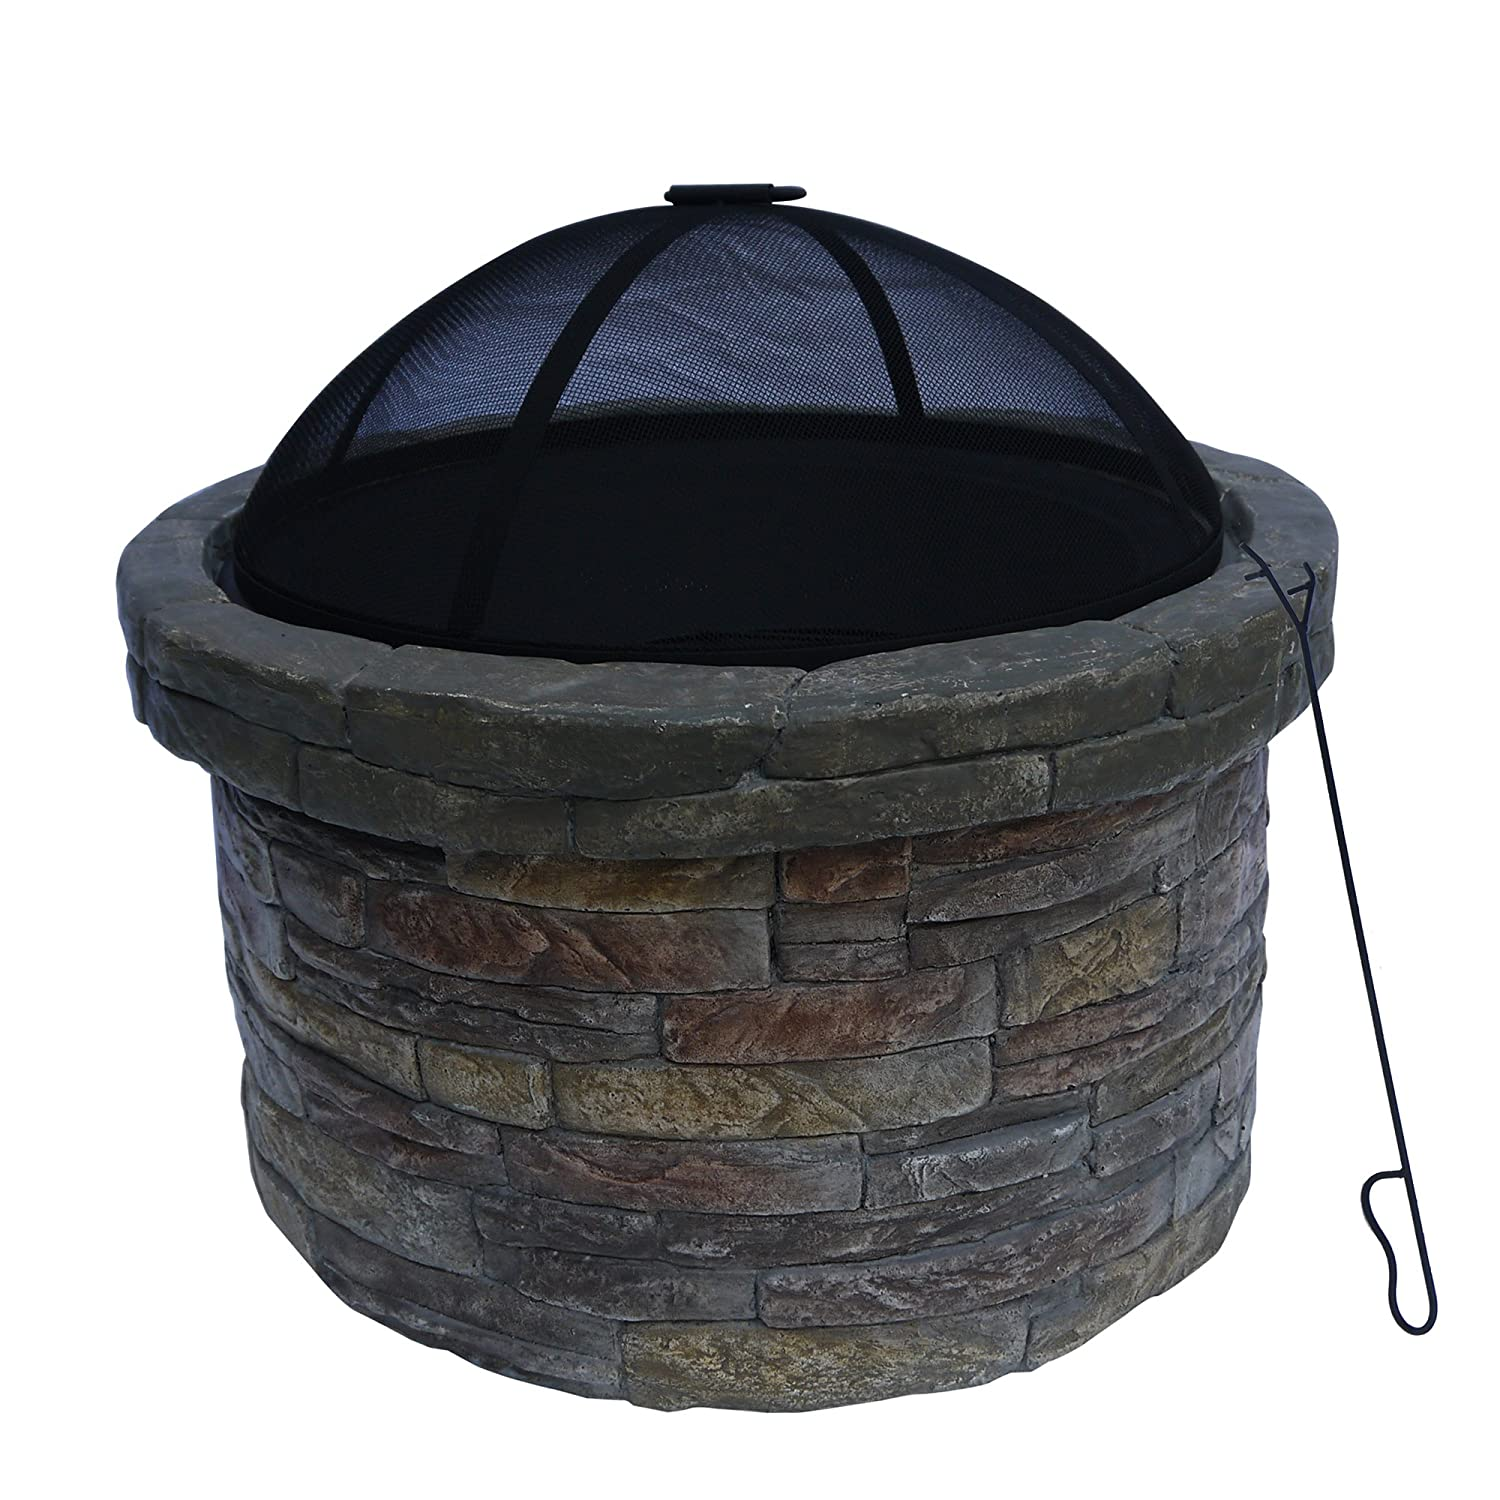 Peaktop HR22818AA Stone Wood Burning Fire Pit with Cover Outdoor Garden Round, 26 Inches, Dark Gray